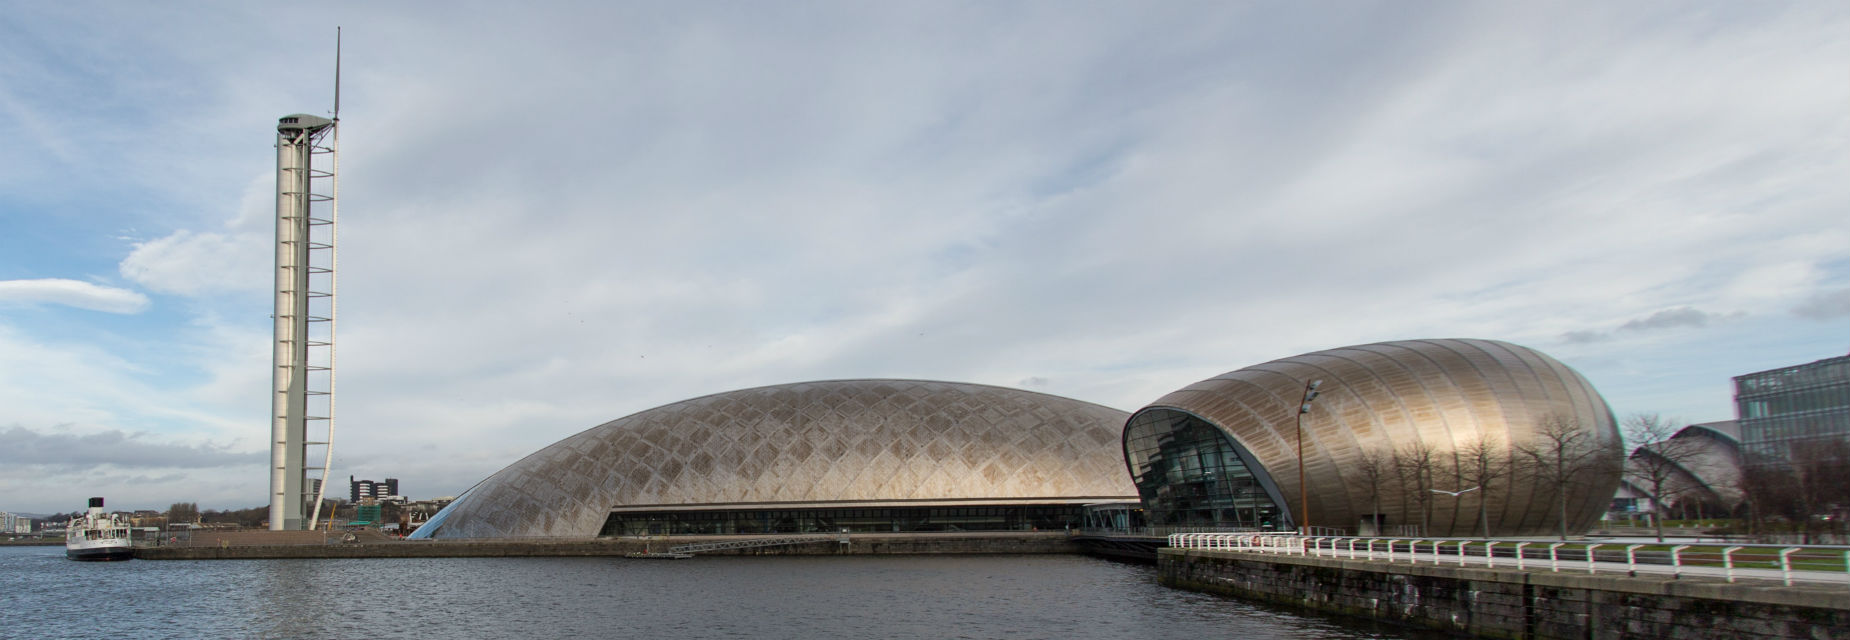 Glasgow Science Centre, Glasgow Tower and IMAX cinema